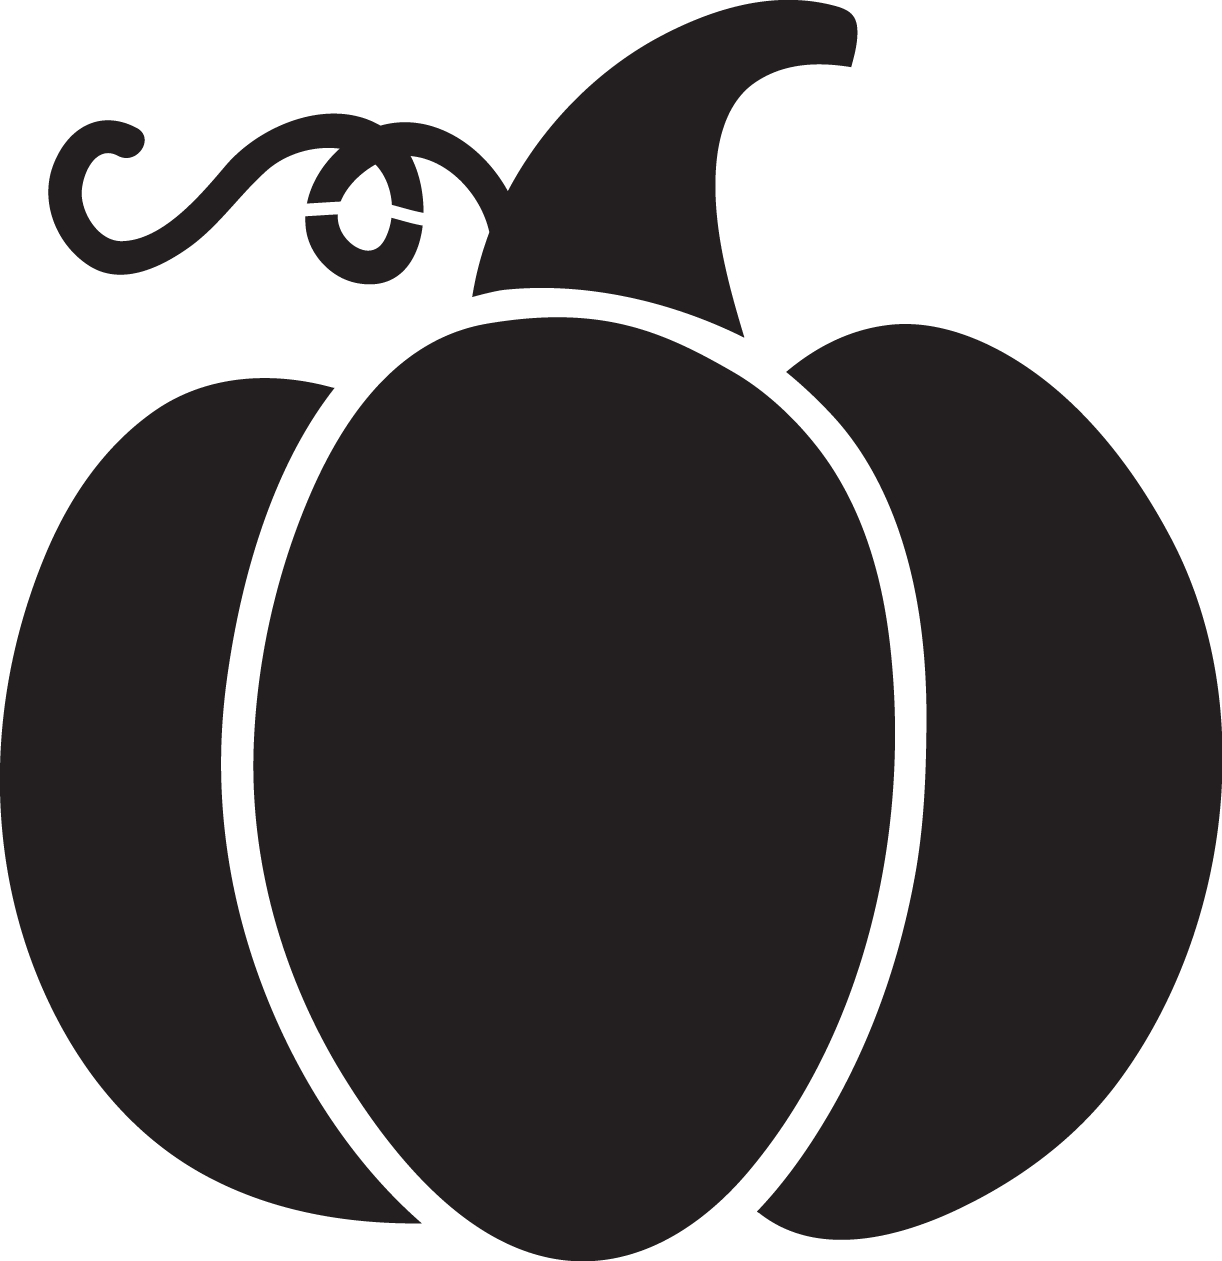 Pumpkin Silhouette Png at GetDrawings